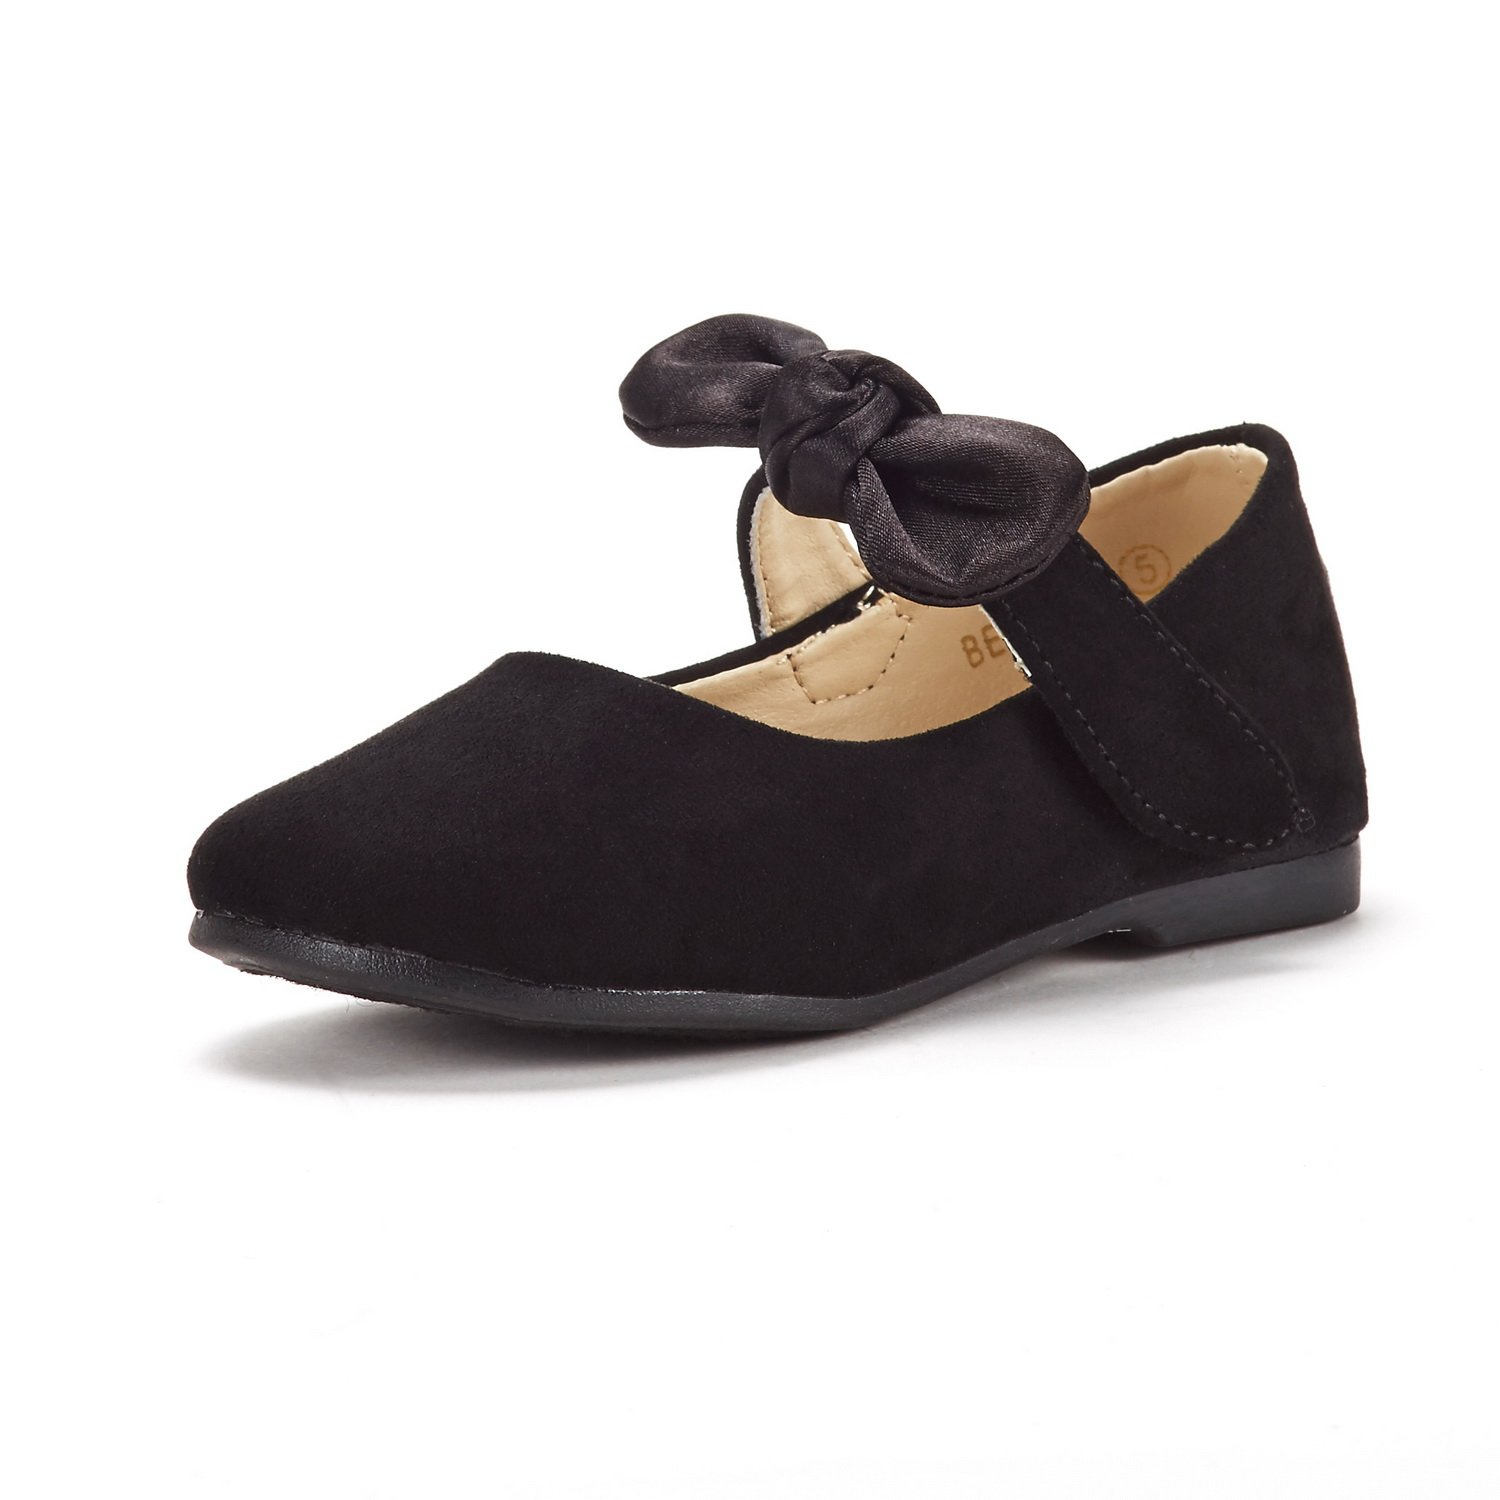 DREAM PAIRS Toddler Belle_02 Black Girl's Mary Jane Ballerina Flat Shoes Size 4 M US Toddler